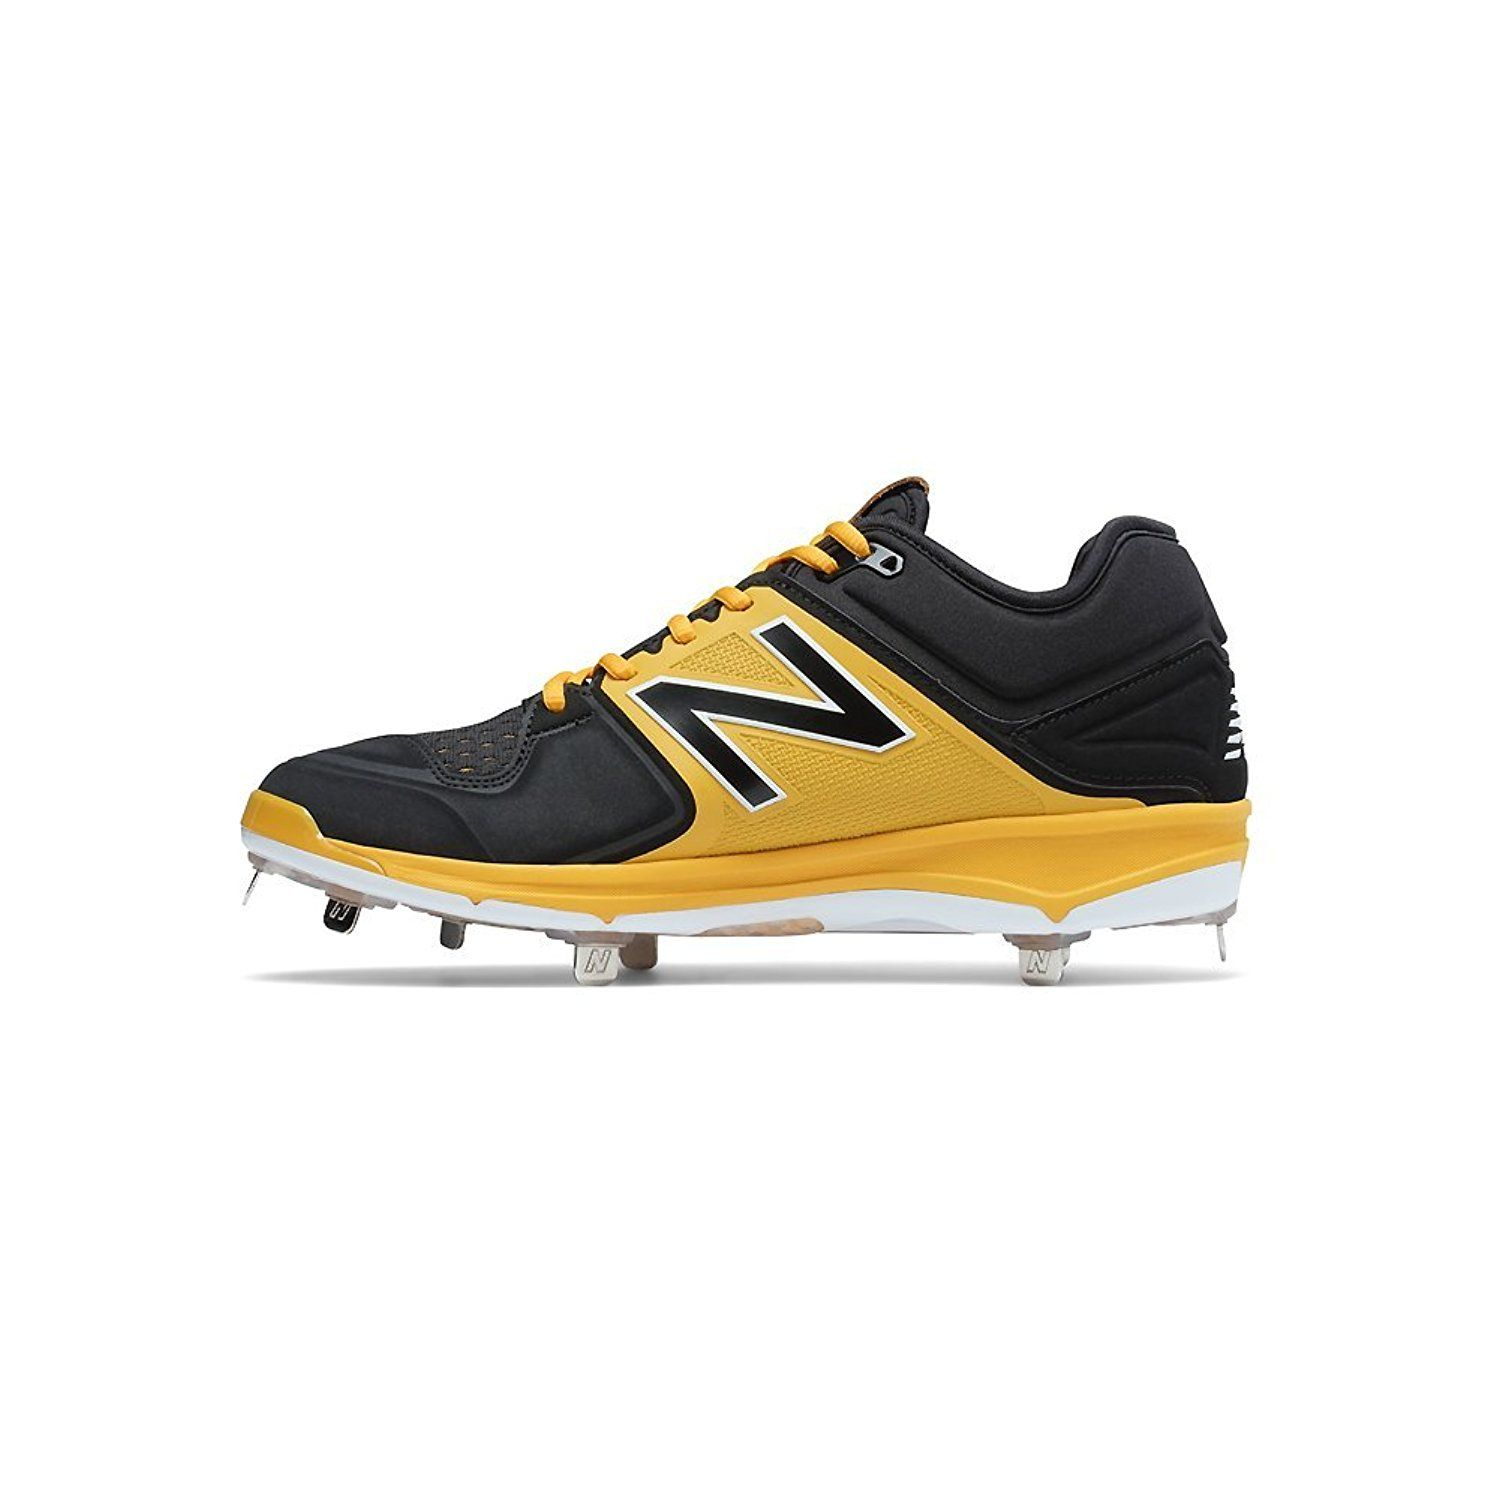 more photos 5e3ff 05843 New Balance 3000v3 Metal Cleats Low-Cut - Black Orange   Details can be  found by clicking on the image. (This is an affiliate link and I receive a  ...